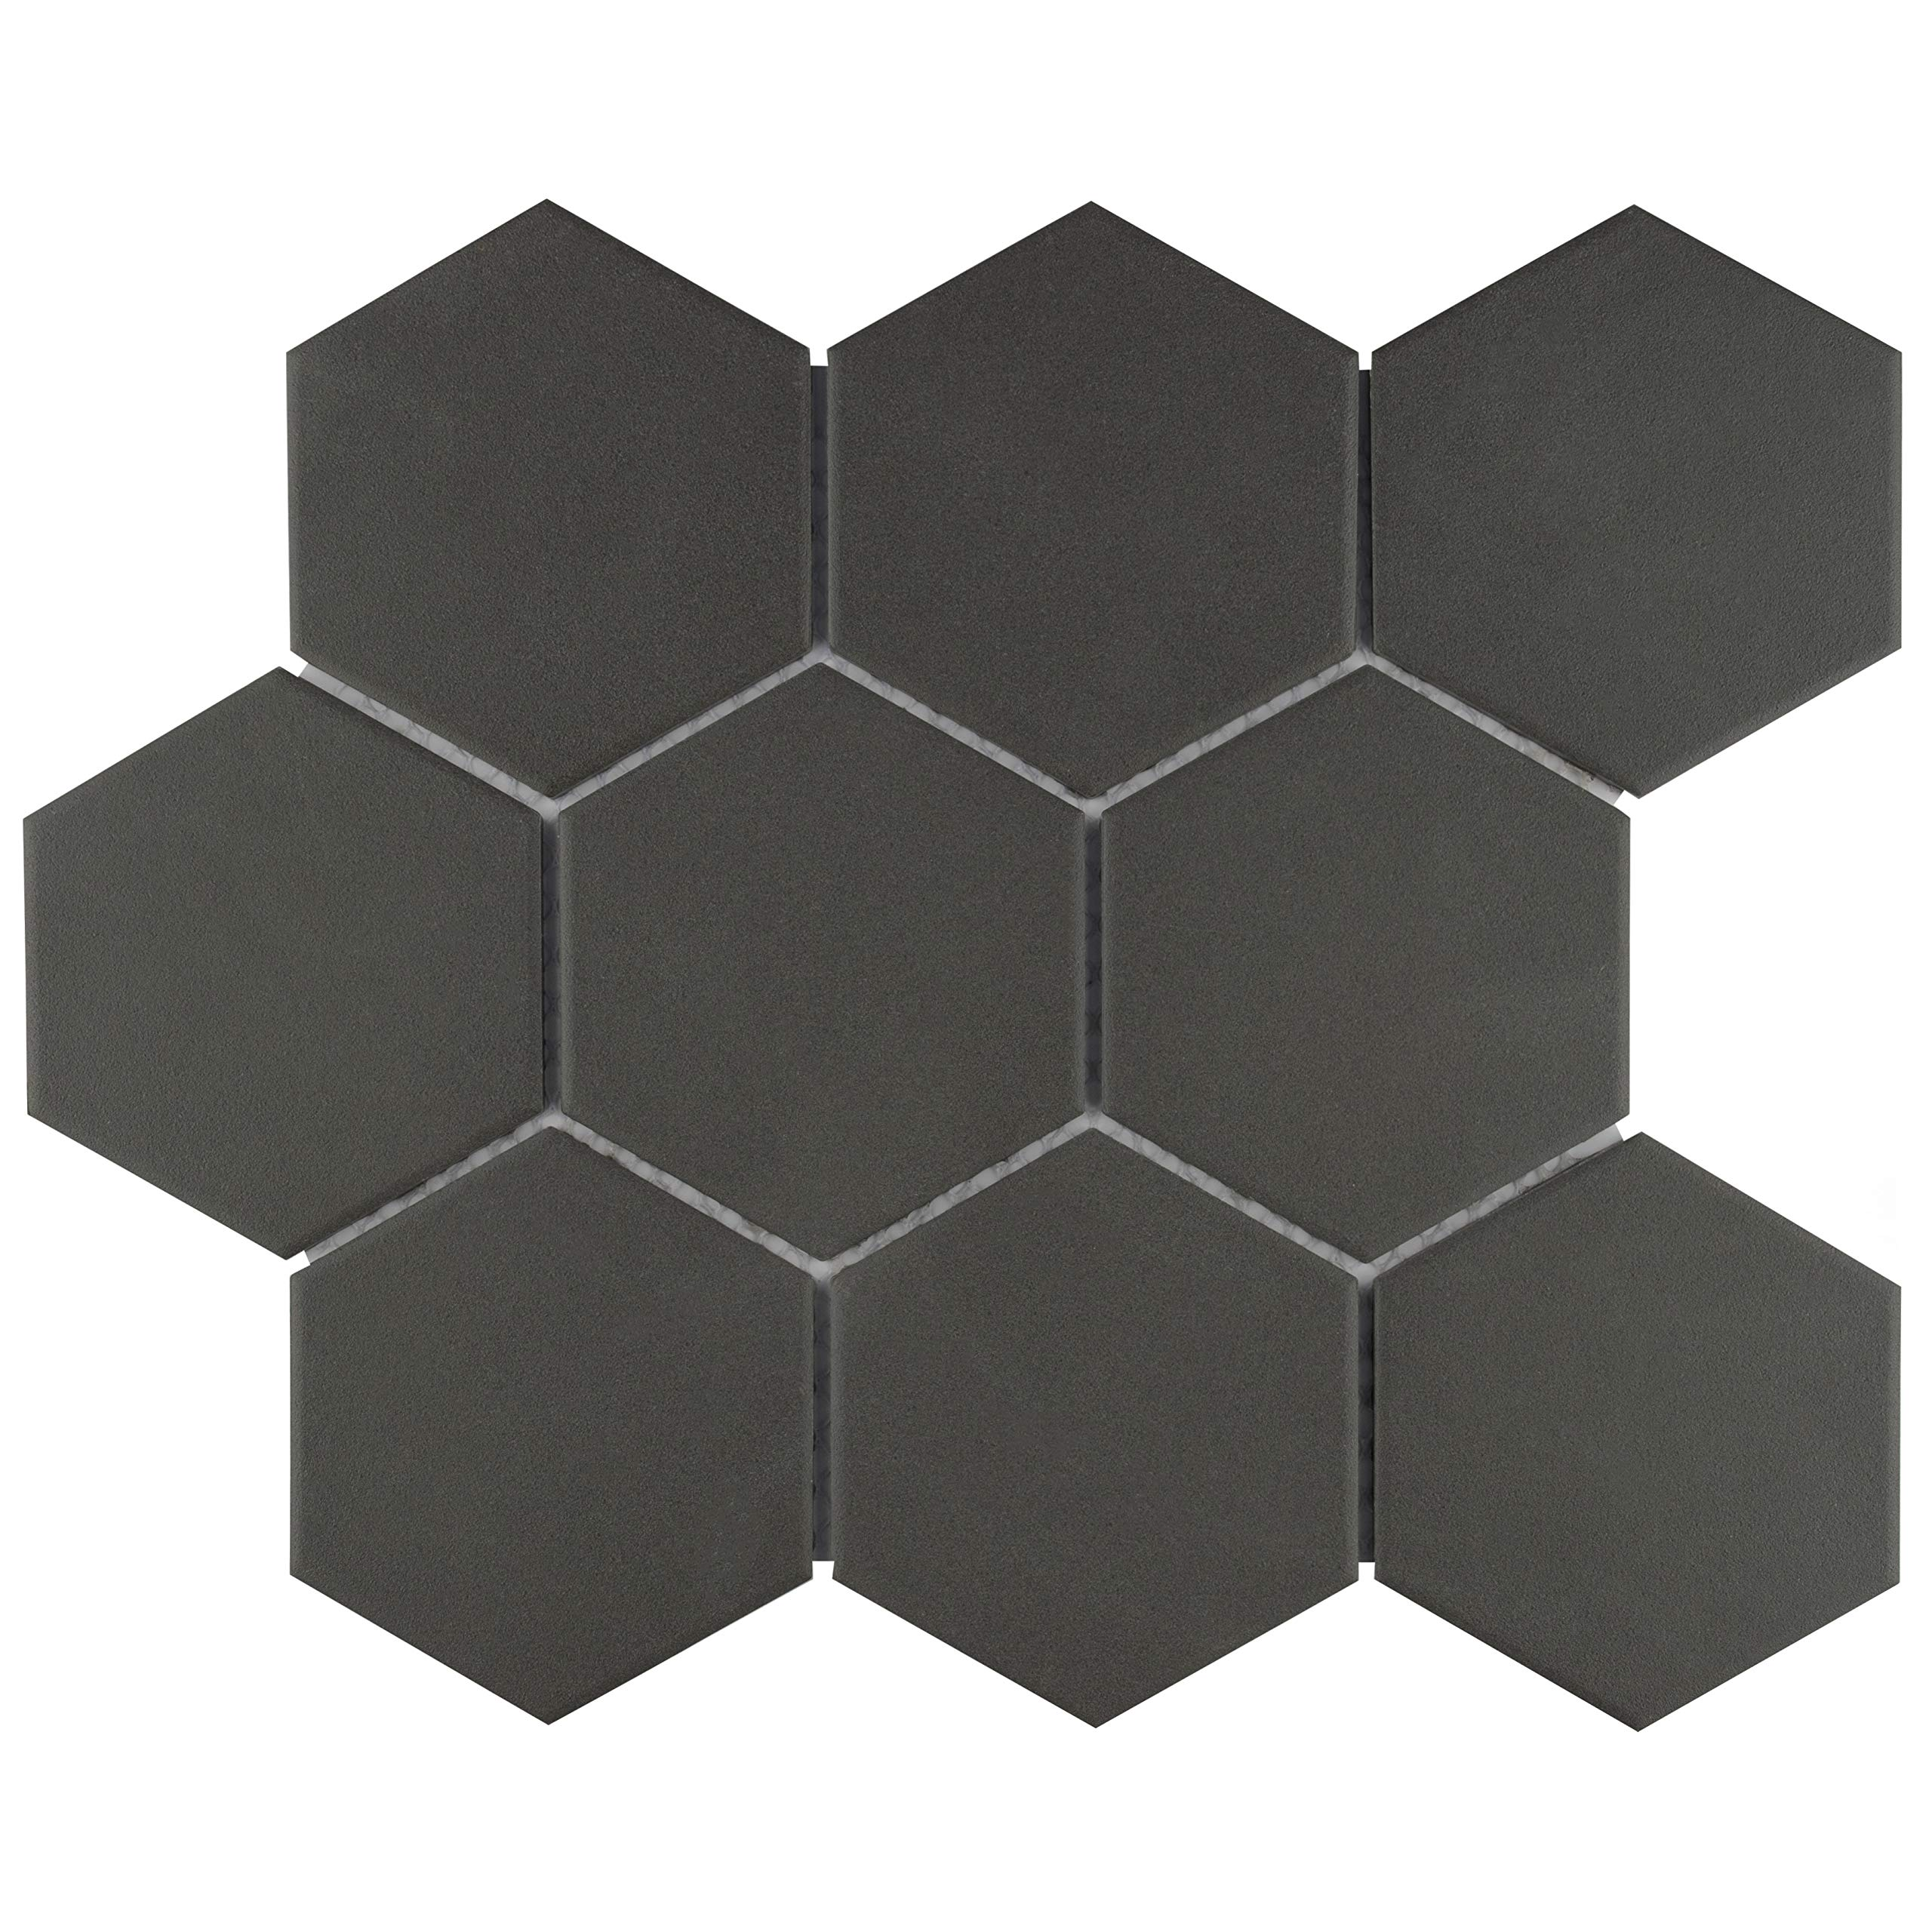 SomerTile FXLG4HBK Antique Super Hex Unglazed Porcelain Mosaic Floor and Wall Tile, 10'' x 11.5'', Black, 10 Piece